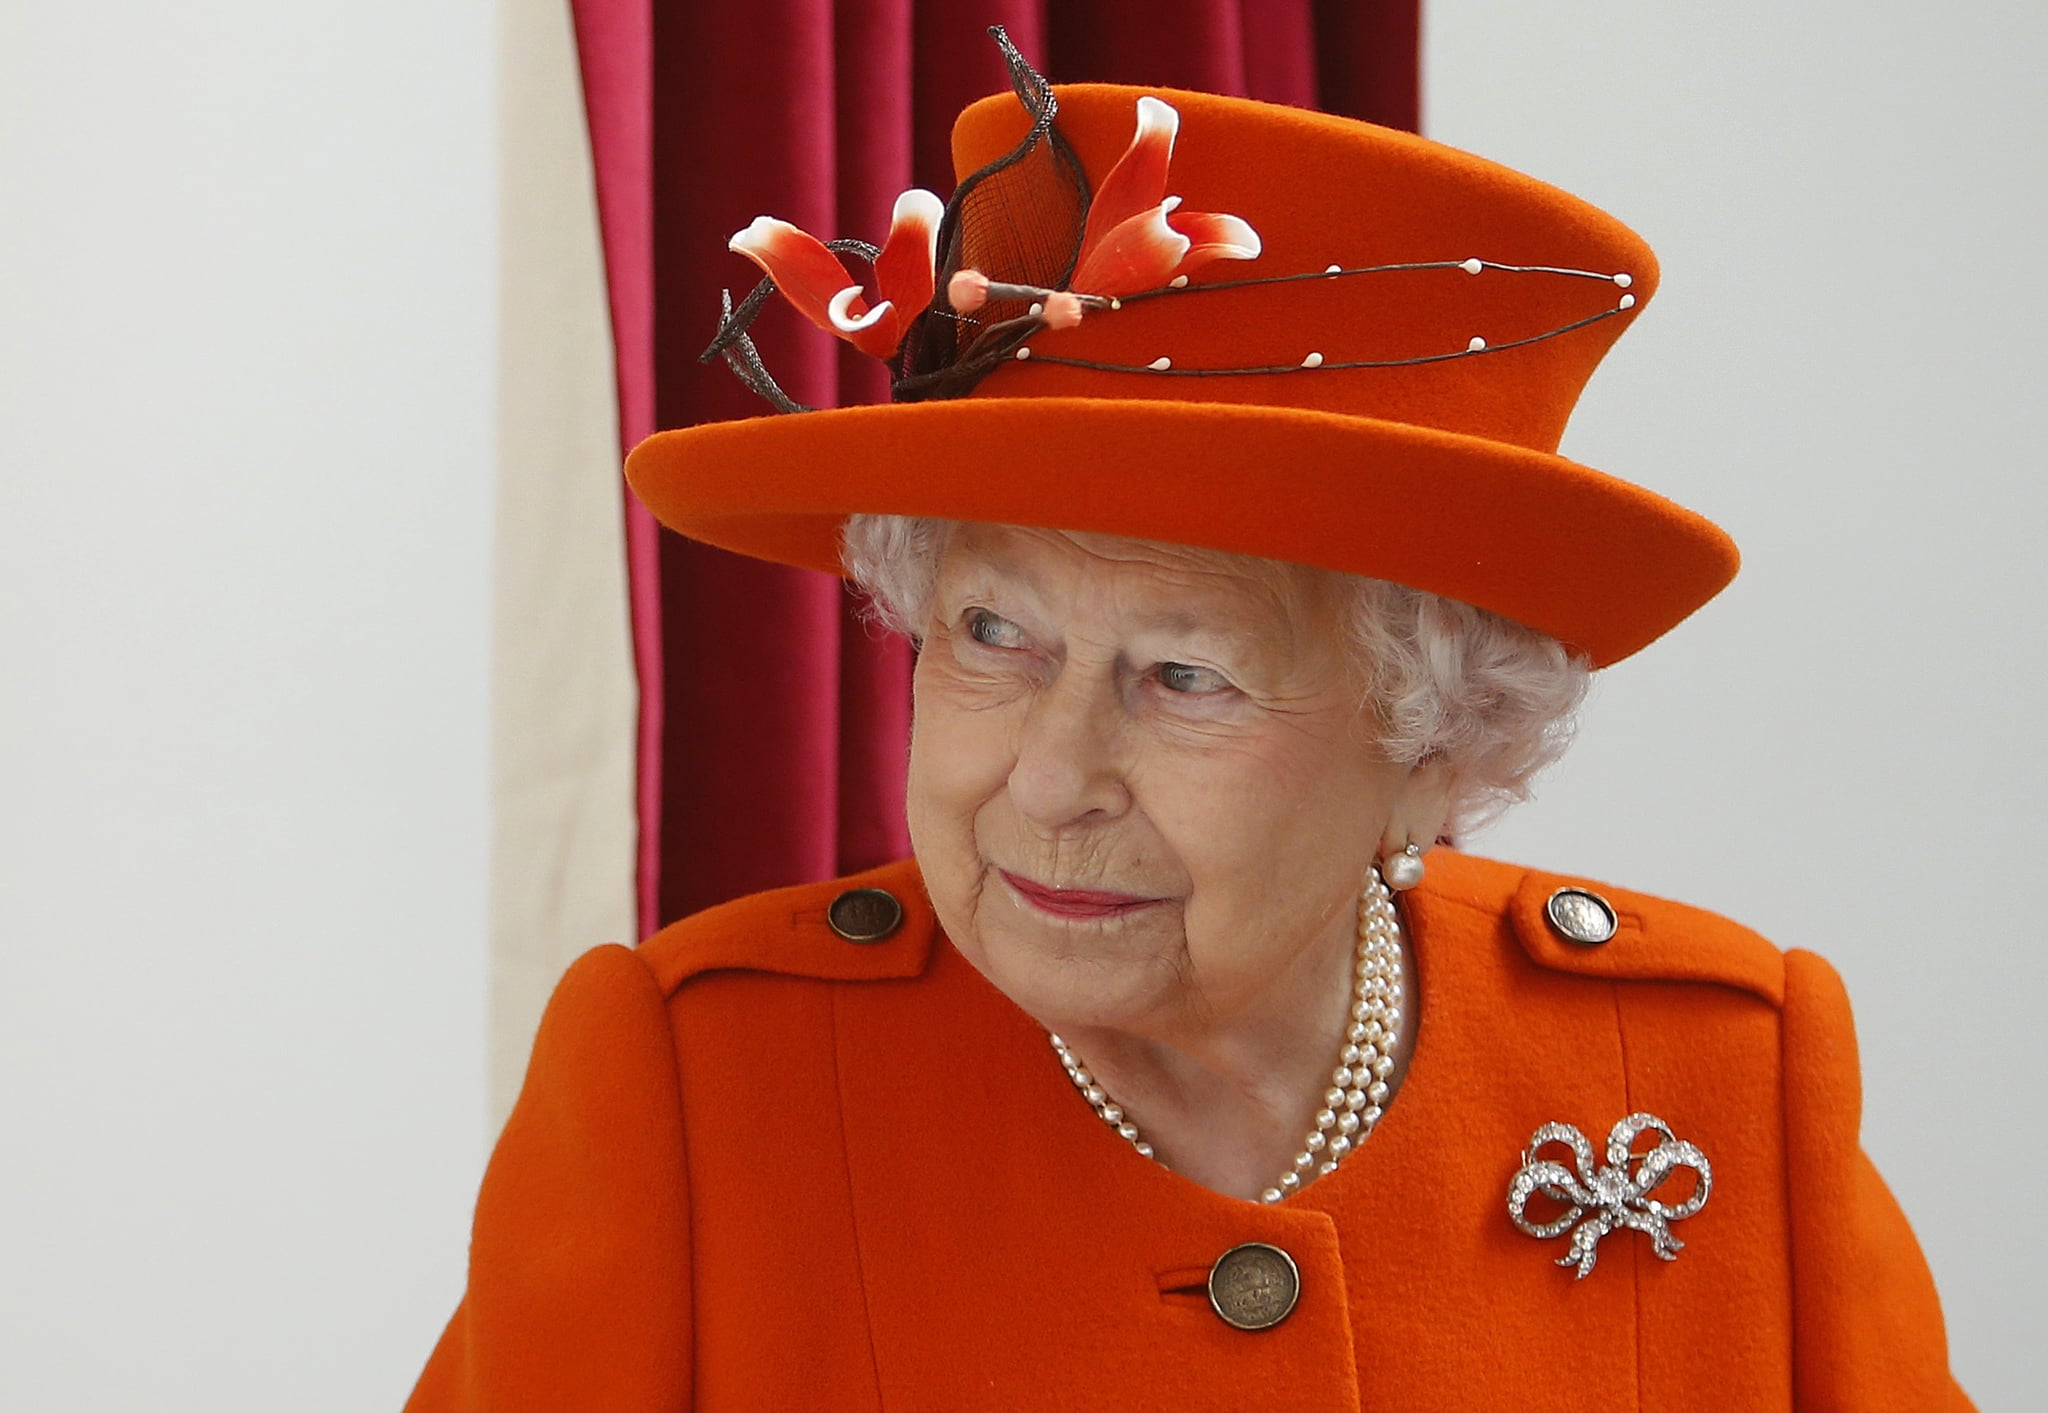 Britain's Queen Elizabeth II visits the Royal Academy of Arts in London on March 20, 2018.The Royal Academy of Arts has completed a major redevelopment of its galleries for the academy's 250th anniversary year. During the course of the visit, Her Majesty will also have an opportunity to view the Royal Academy's current exhibition 'Charles I: King and Collector'. / AFP PHOTO / POOL / Alastair Grant        (Photo credit should read ALASTAIR GRANT/AFP/Getty Images)